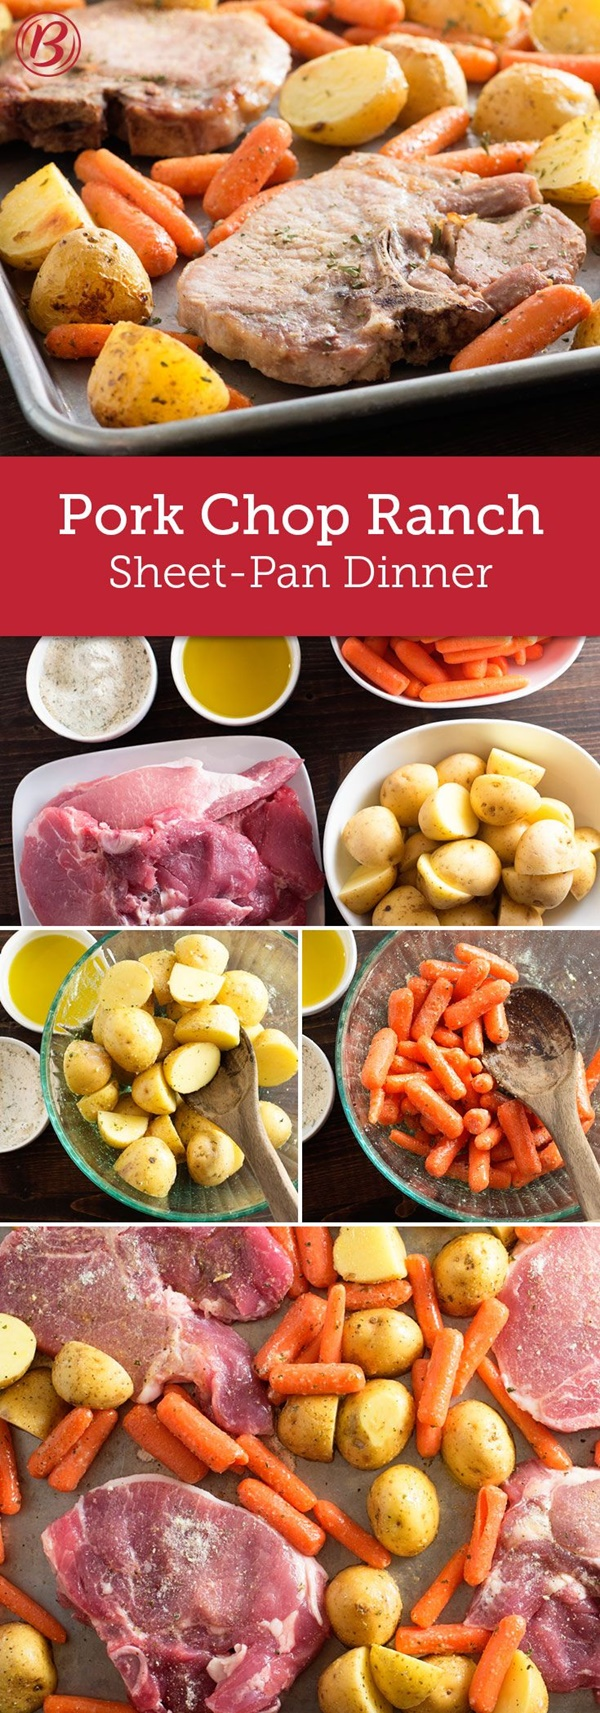 Sheet Pan Meals For Easy Weeknight Dinners